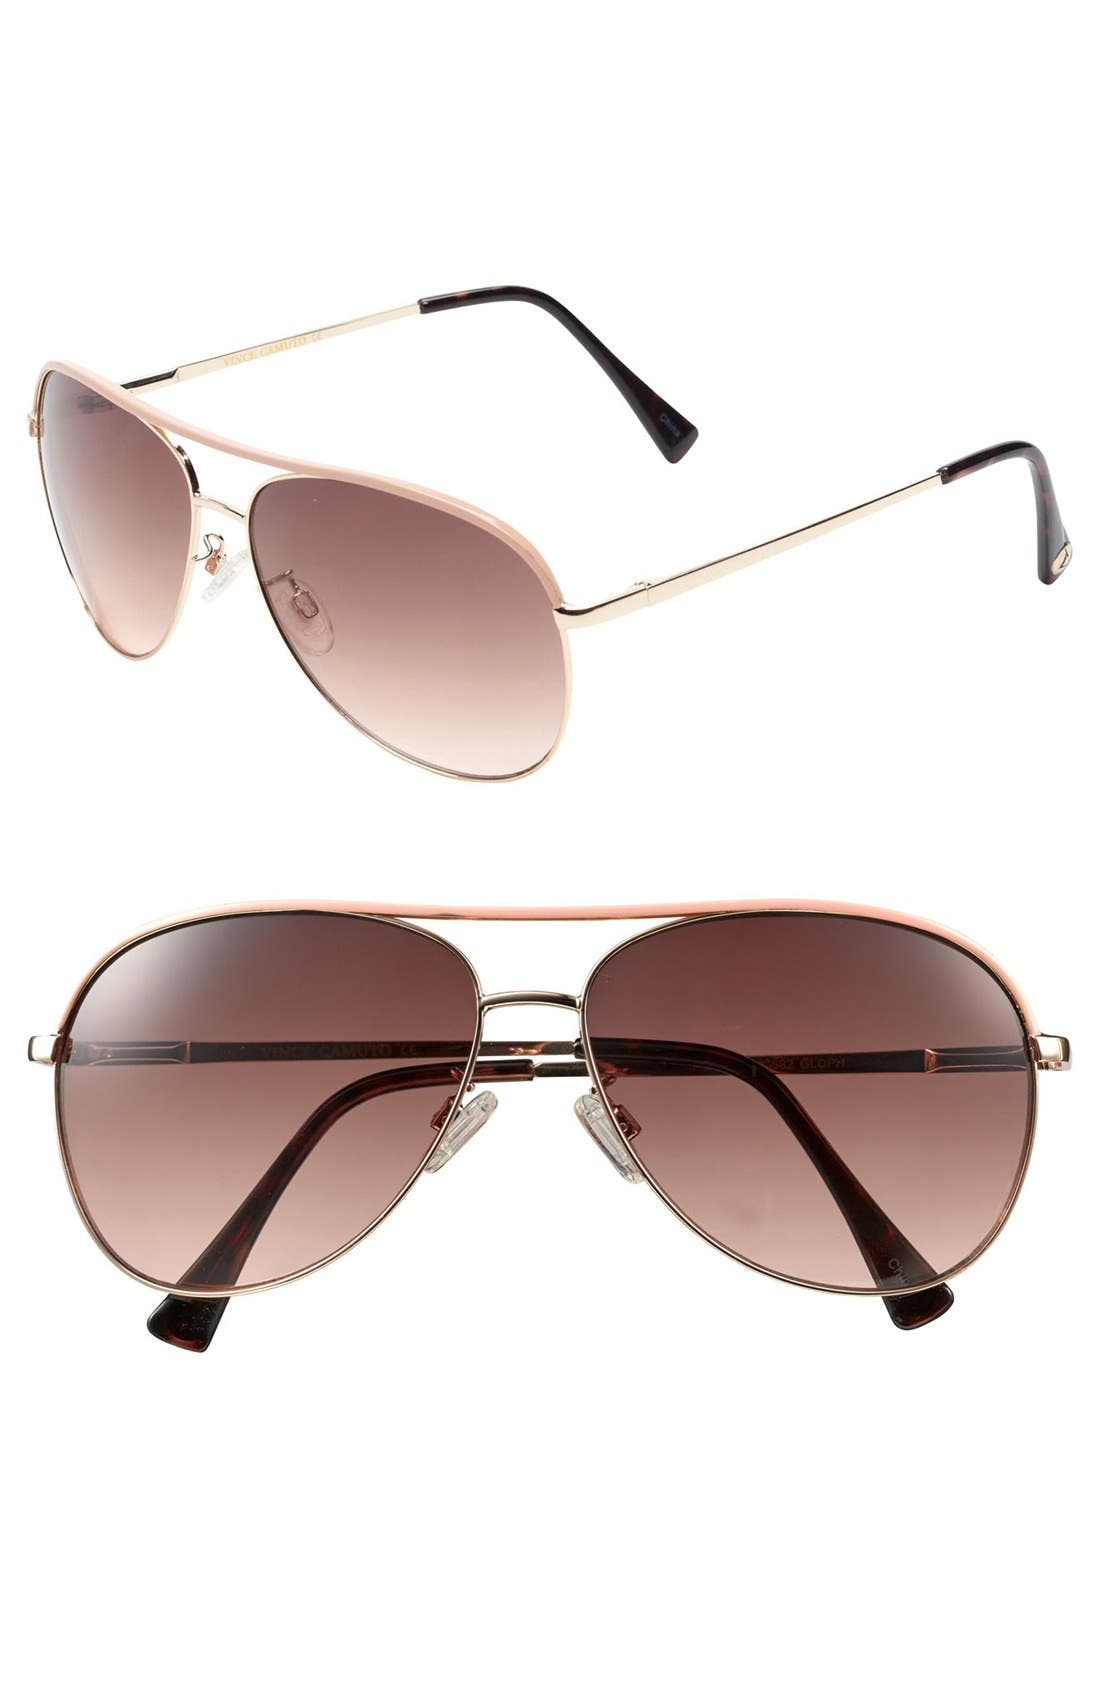 Alternate Image 1 Selected - Vince Camuto Metal 60mm Aviator Sunglasses (Online Only)